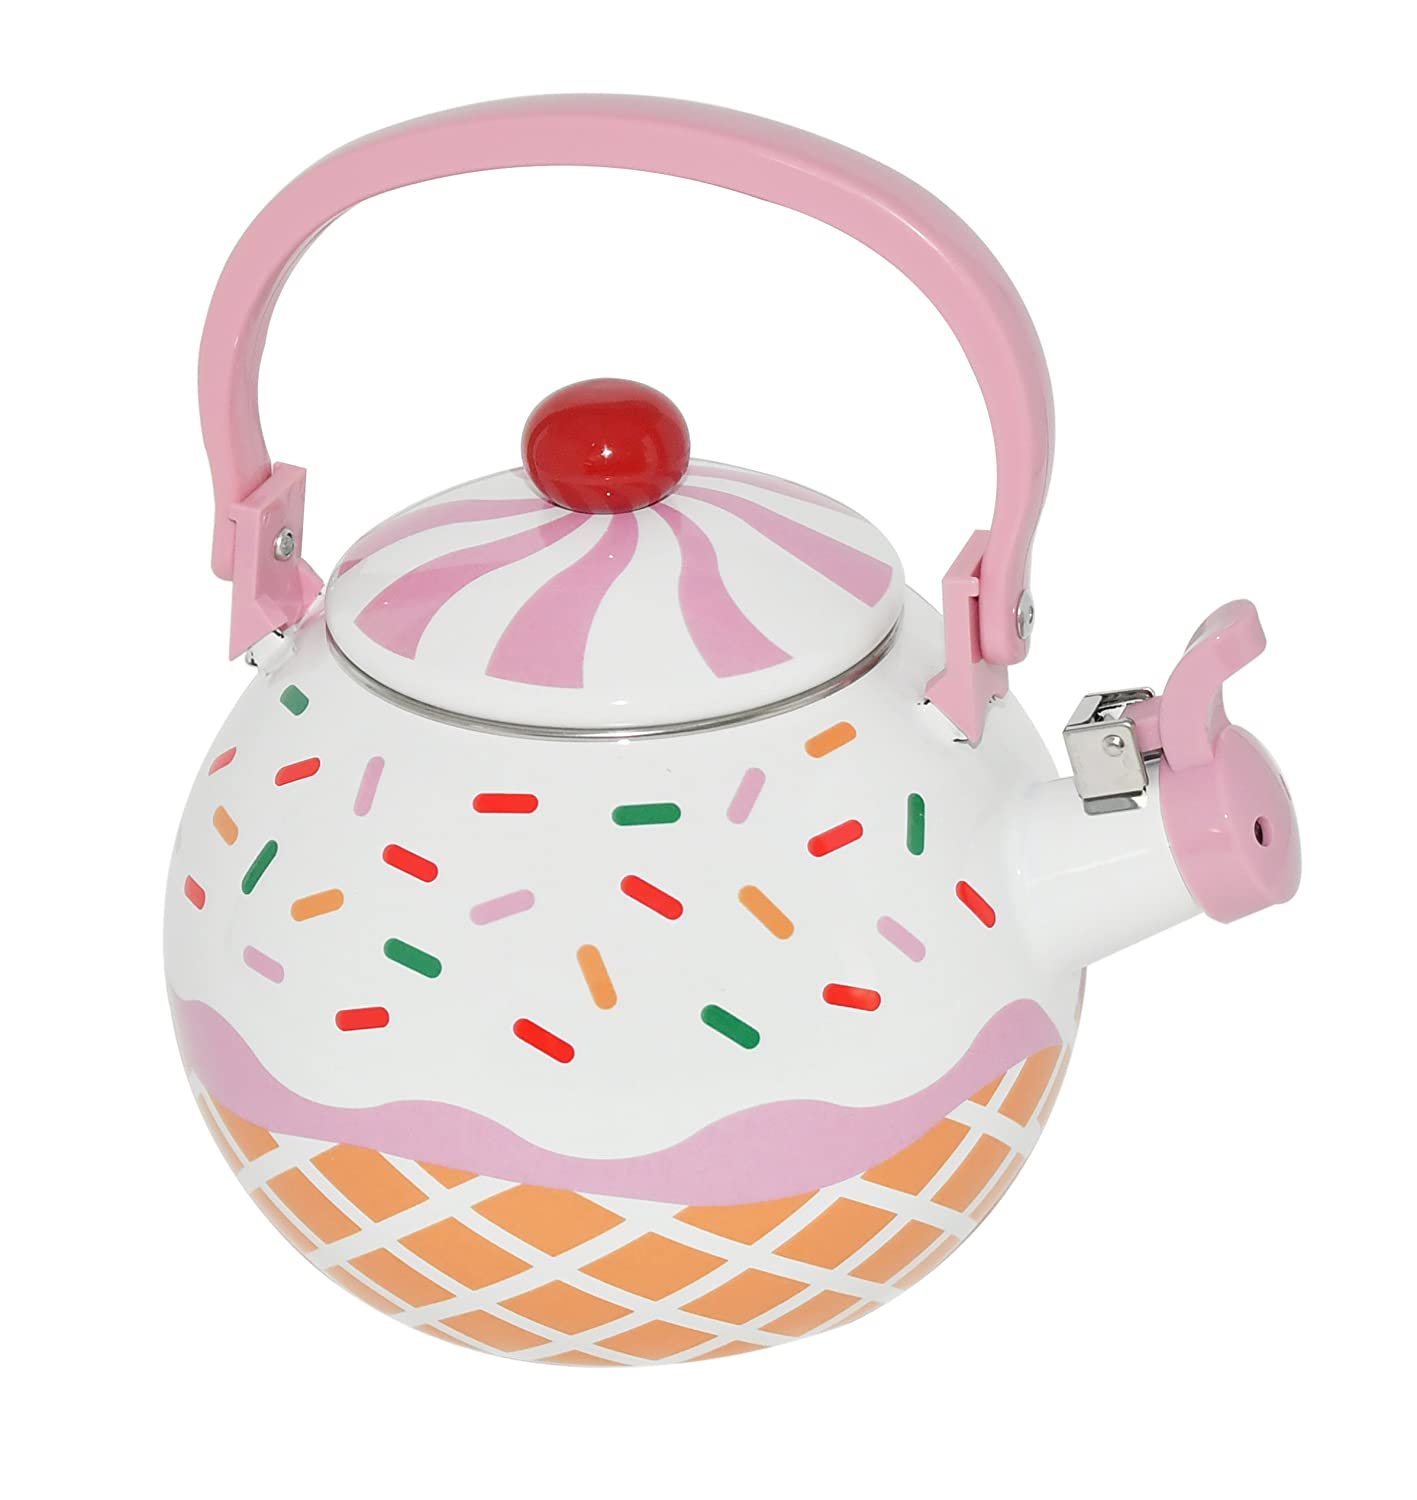 HOME-X Strawberry Cupcake Whistling Tea Kettle, Cute Teapot, Kitchen Accessories